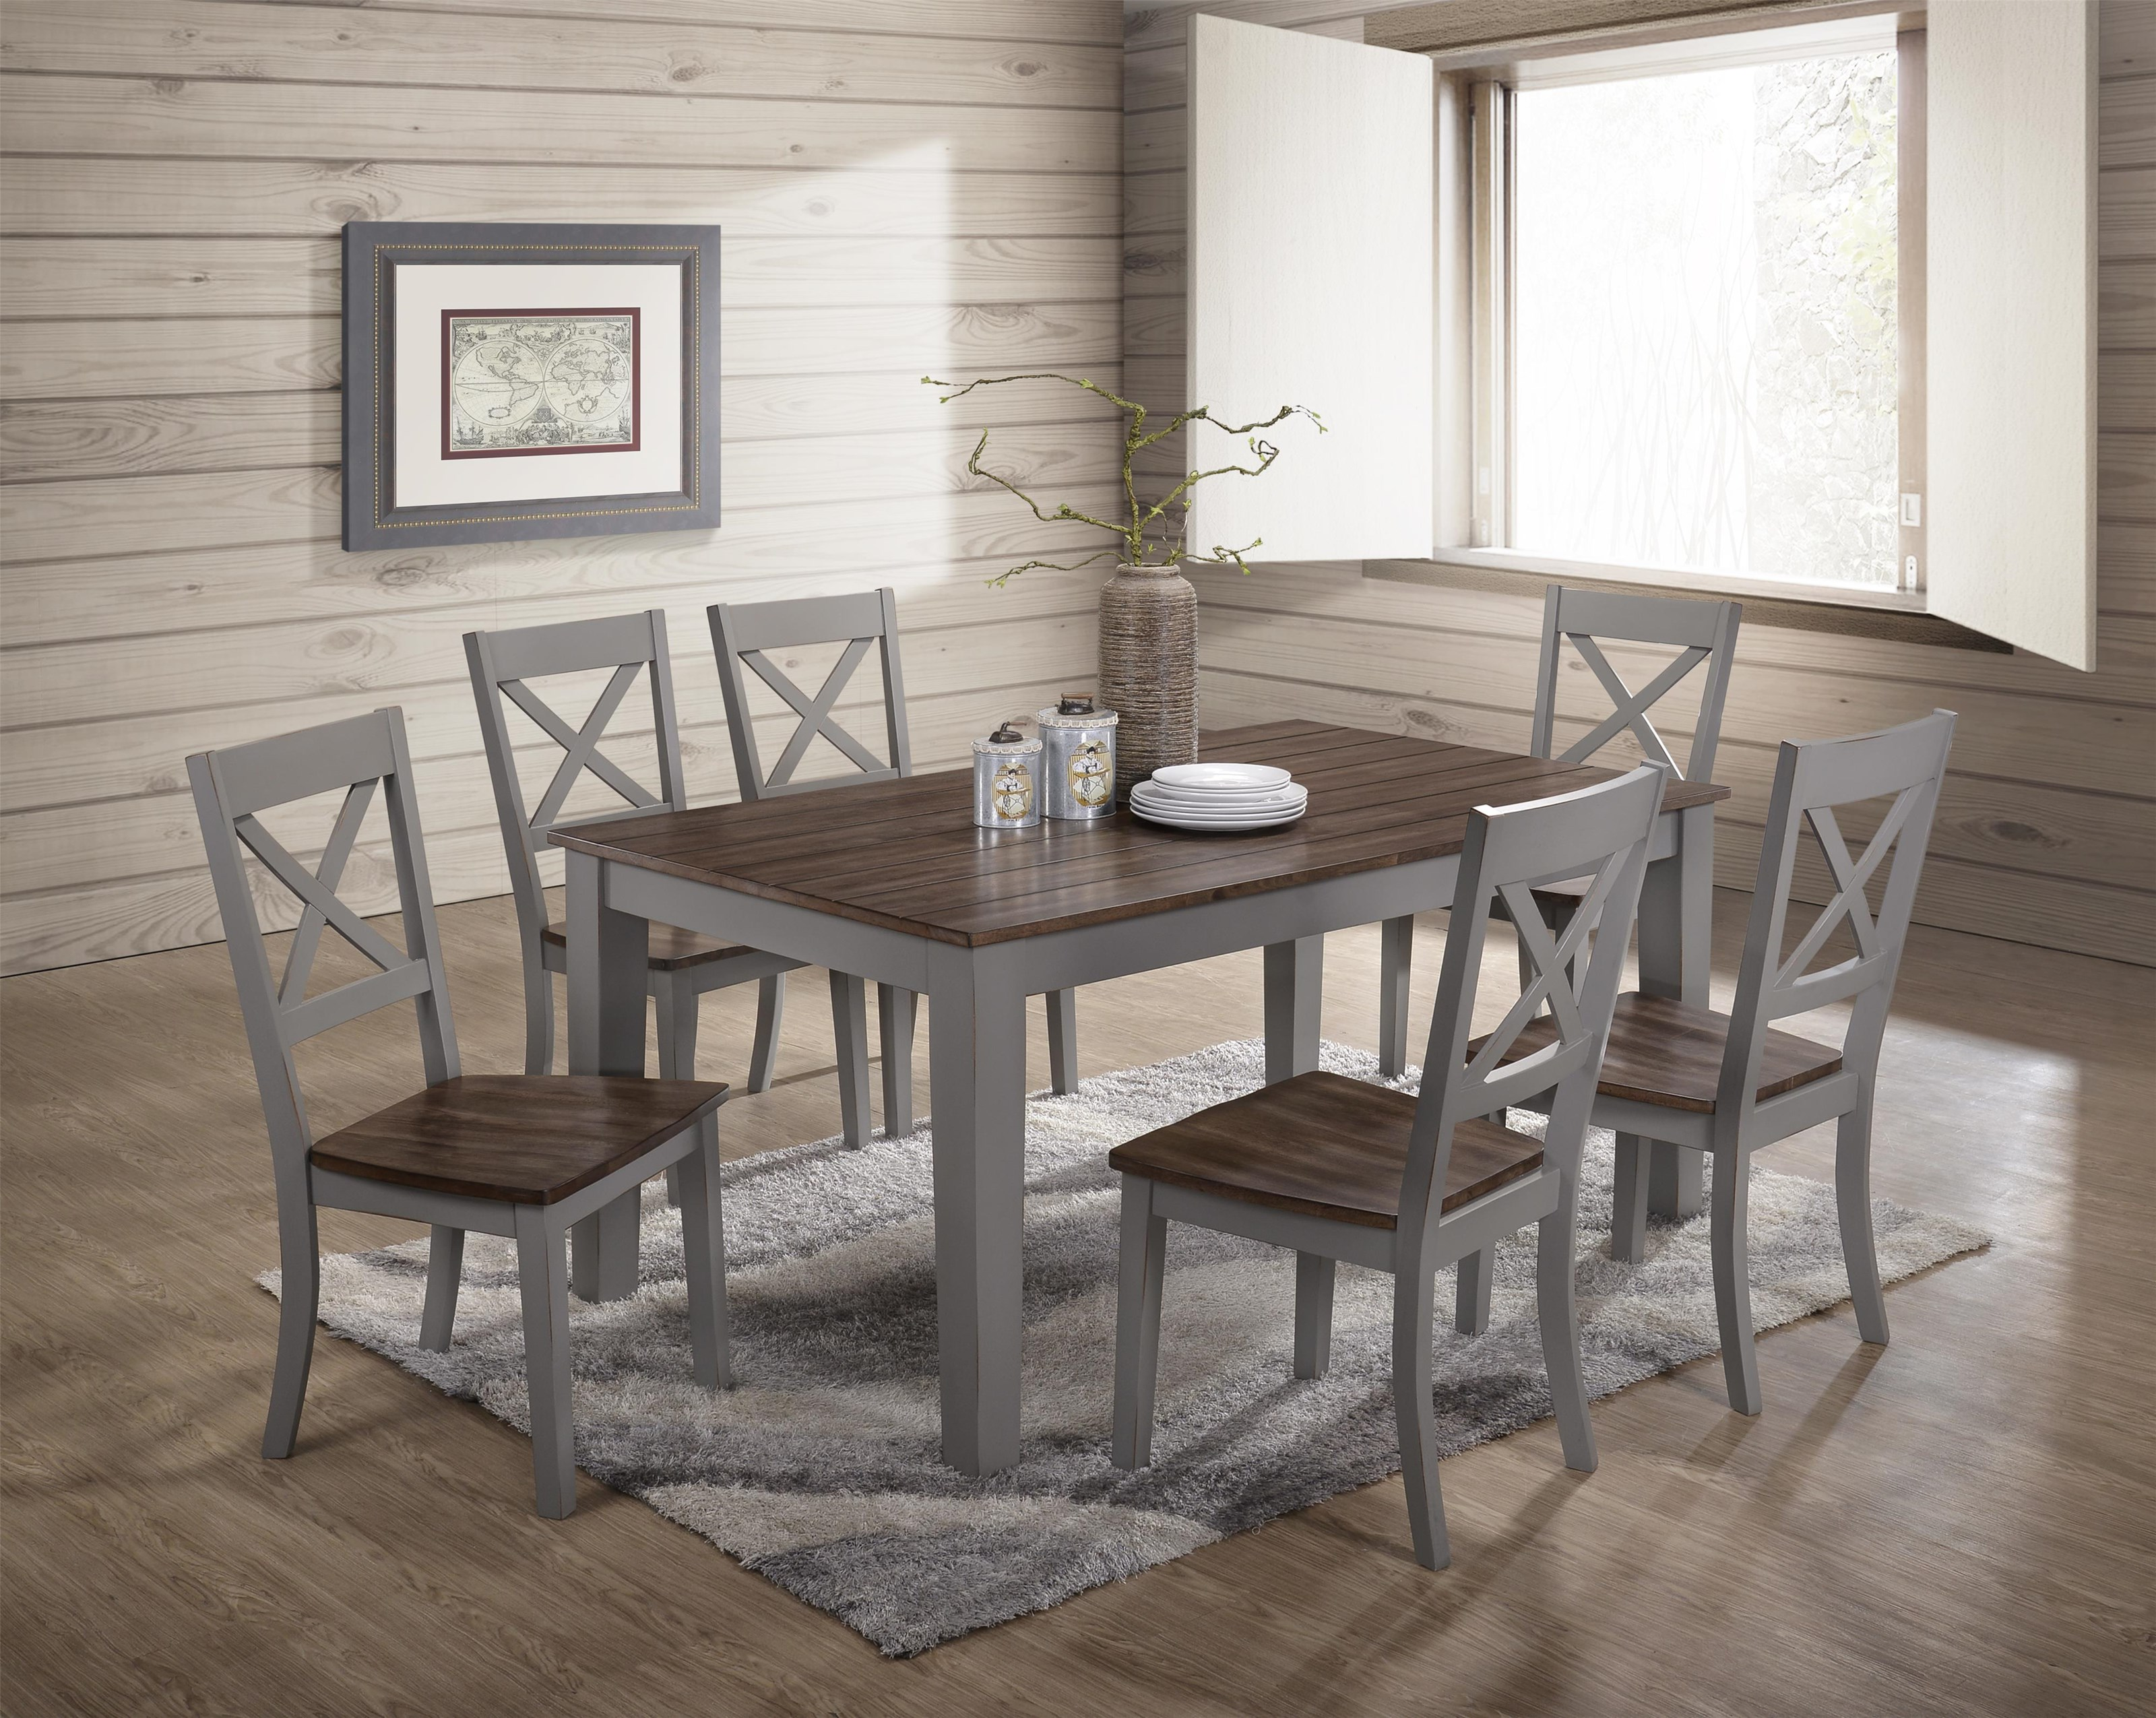 5059 Rectangular Dining Table by United Furniture Industries at Value City Furniture